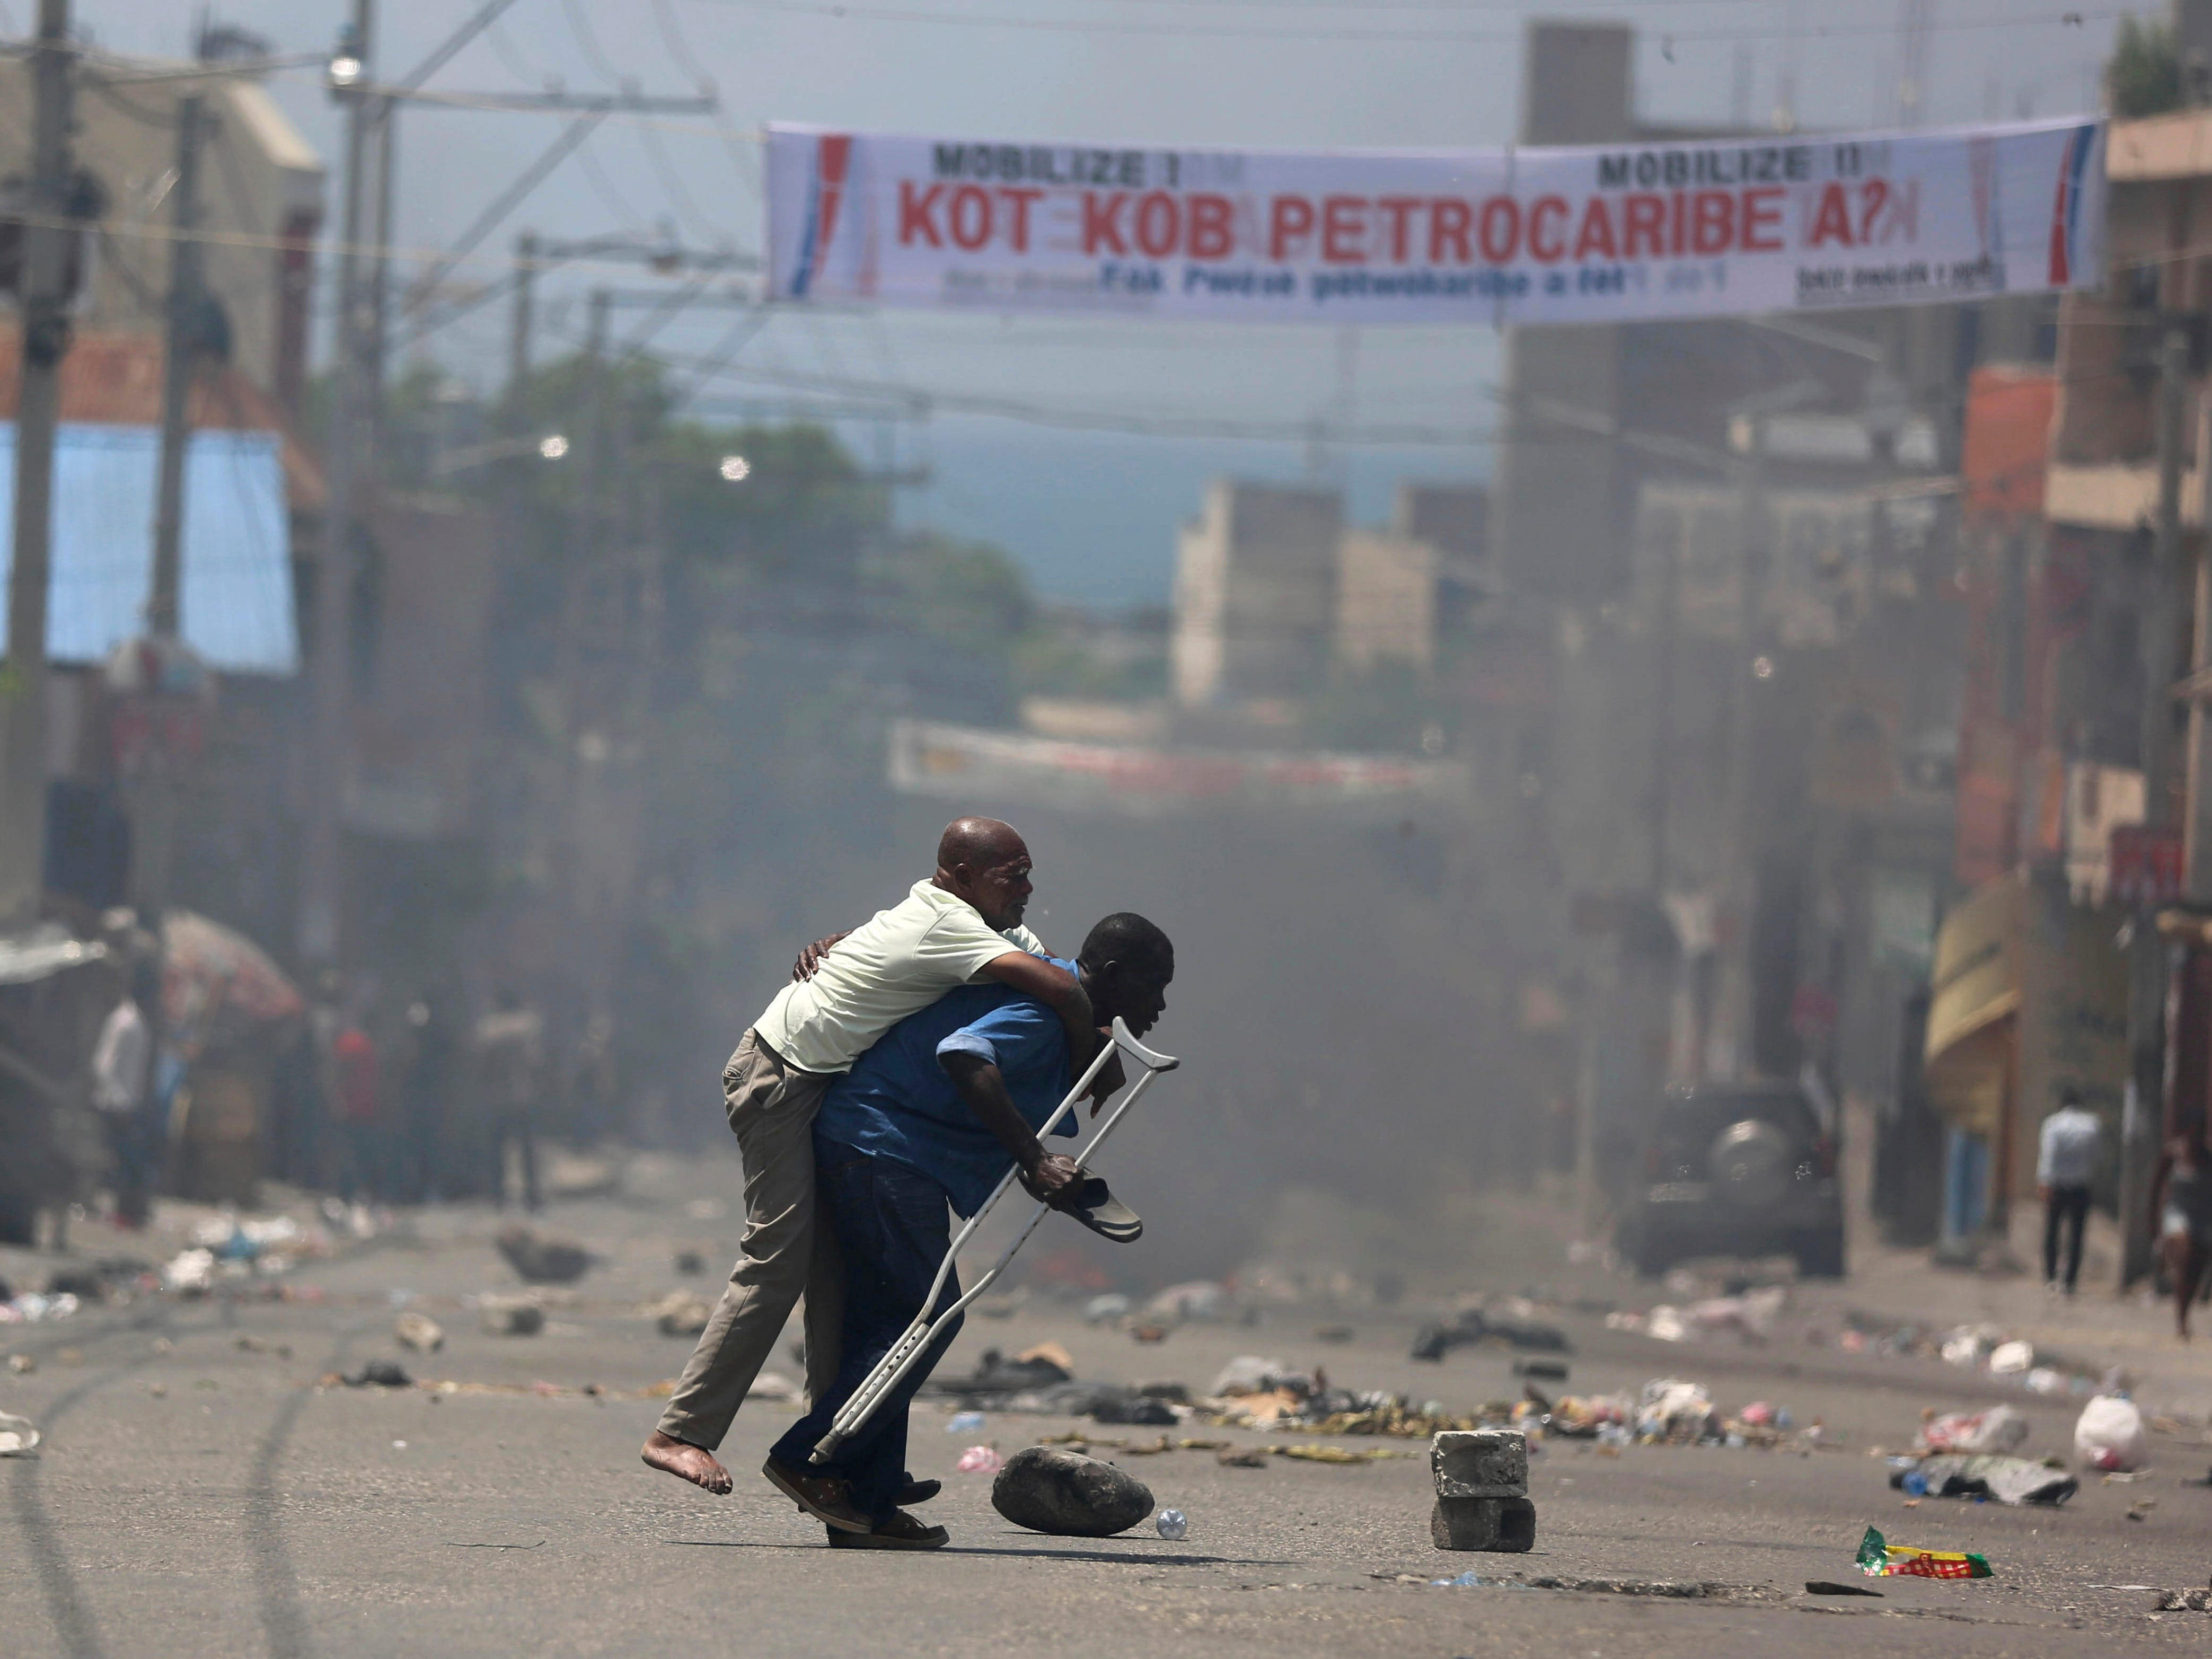 A handicapped man is carried across the street as police firie tear gas at protesters demanding to know how PetroCaribe funds have been used by the government, in Port-au-Prince, Haiti, Sunday, Sept. 9, 2018. Much of the financial support to help Haiti rebuild after the 2010 earthquake comes from Venezuela's PetroCaribe fund, a 2005 pact that gives suppliers below-market financing for oil and is under the control of the central government. Protesters say many projects are unfinished and that officials have inflated costs in order to steal money.